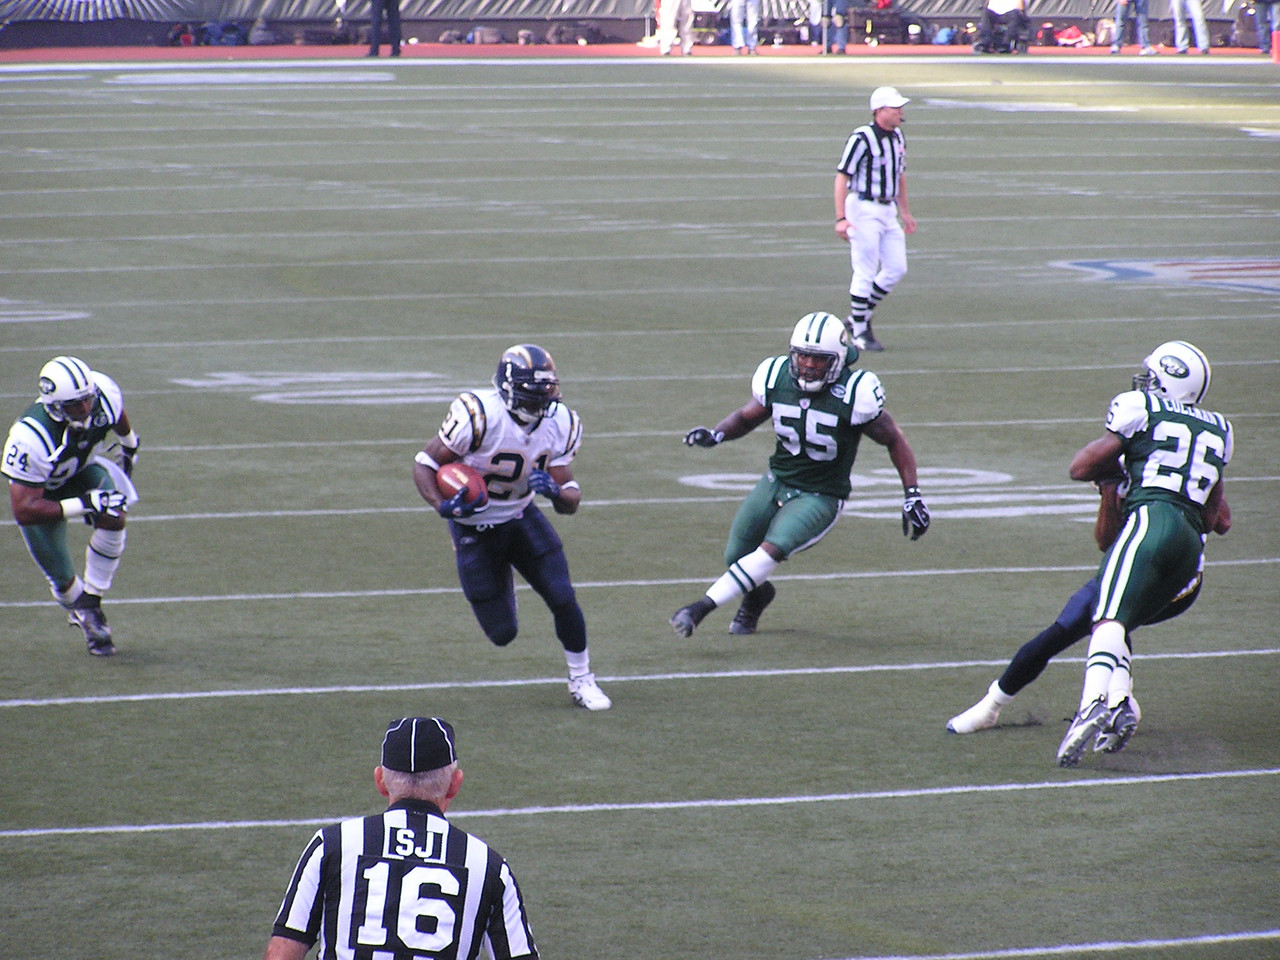 Tomlinson on his way to scoring 1 of 3 touchdowns